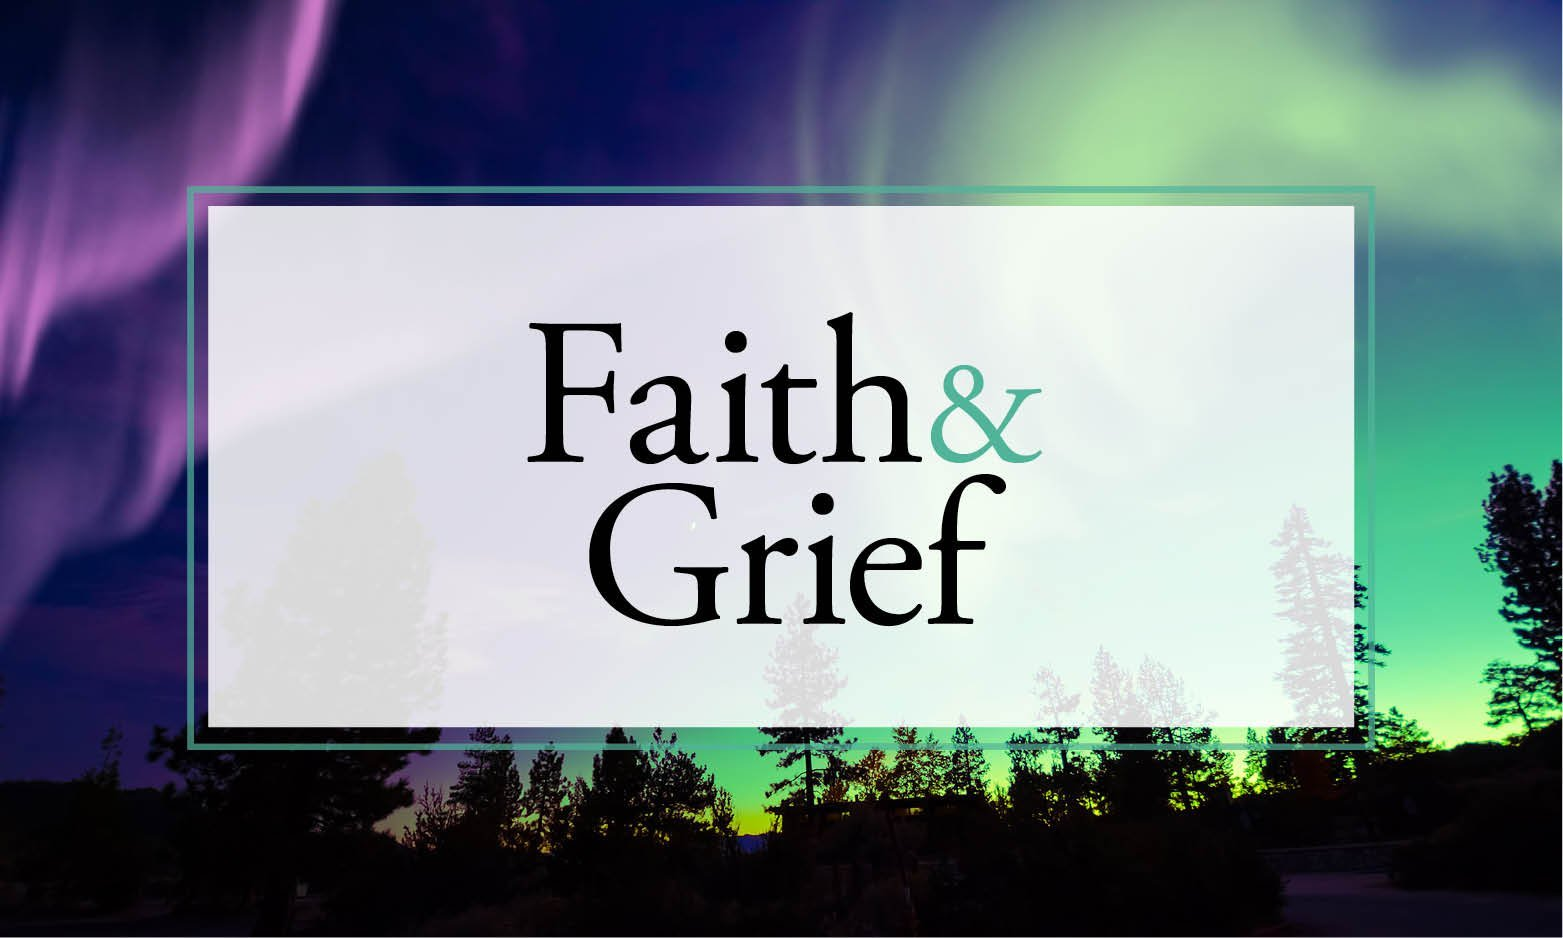 faith and grief: talking about how different faiths address death